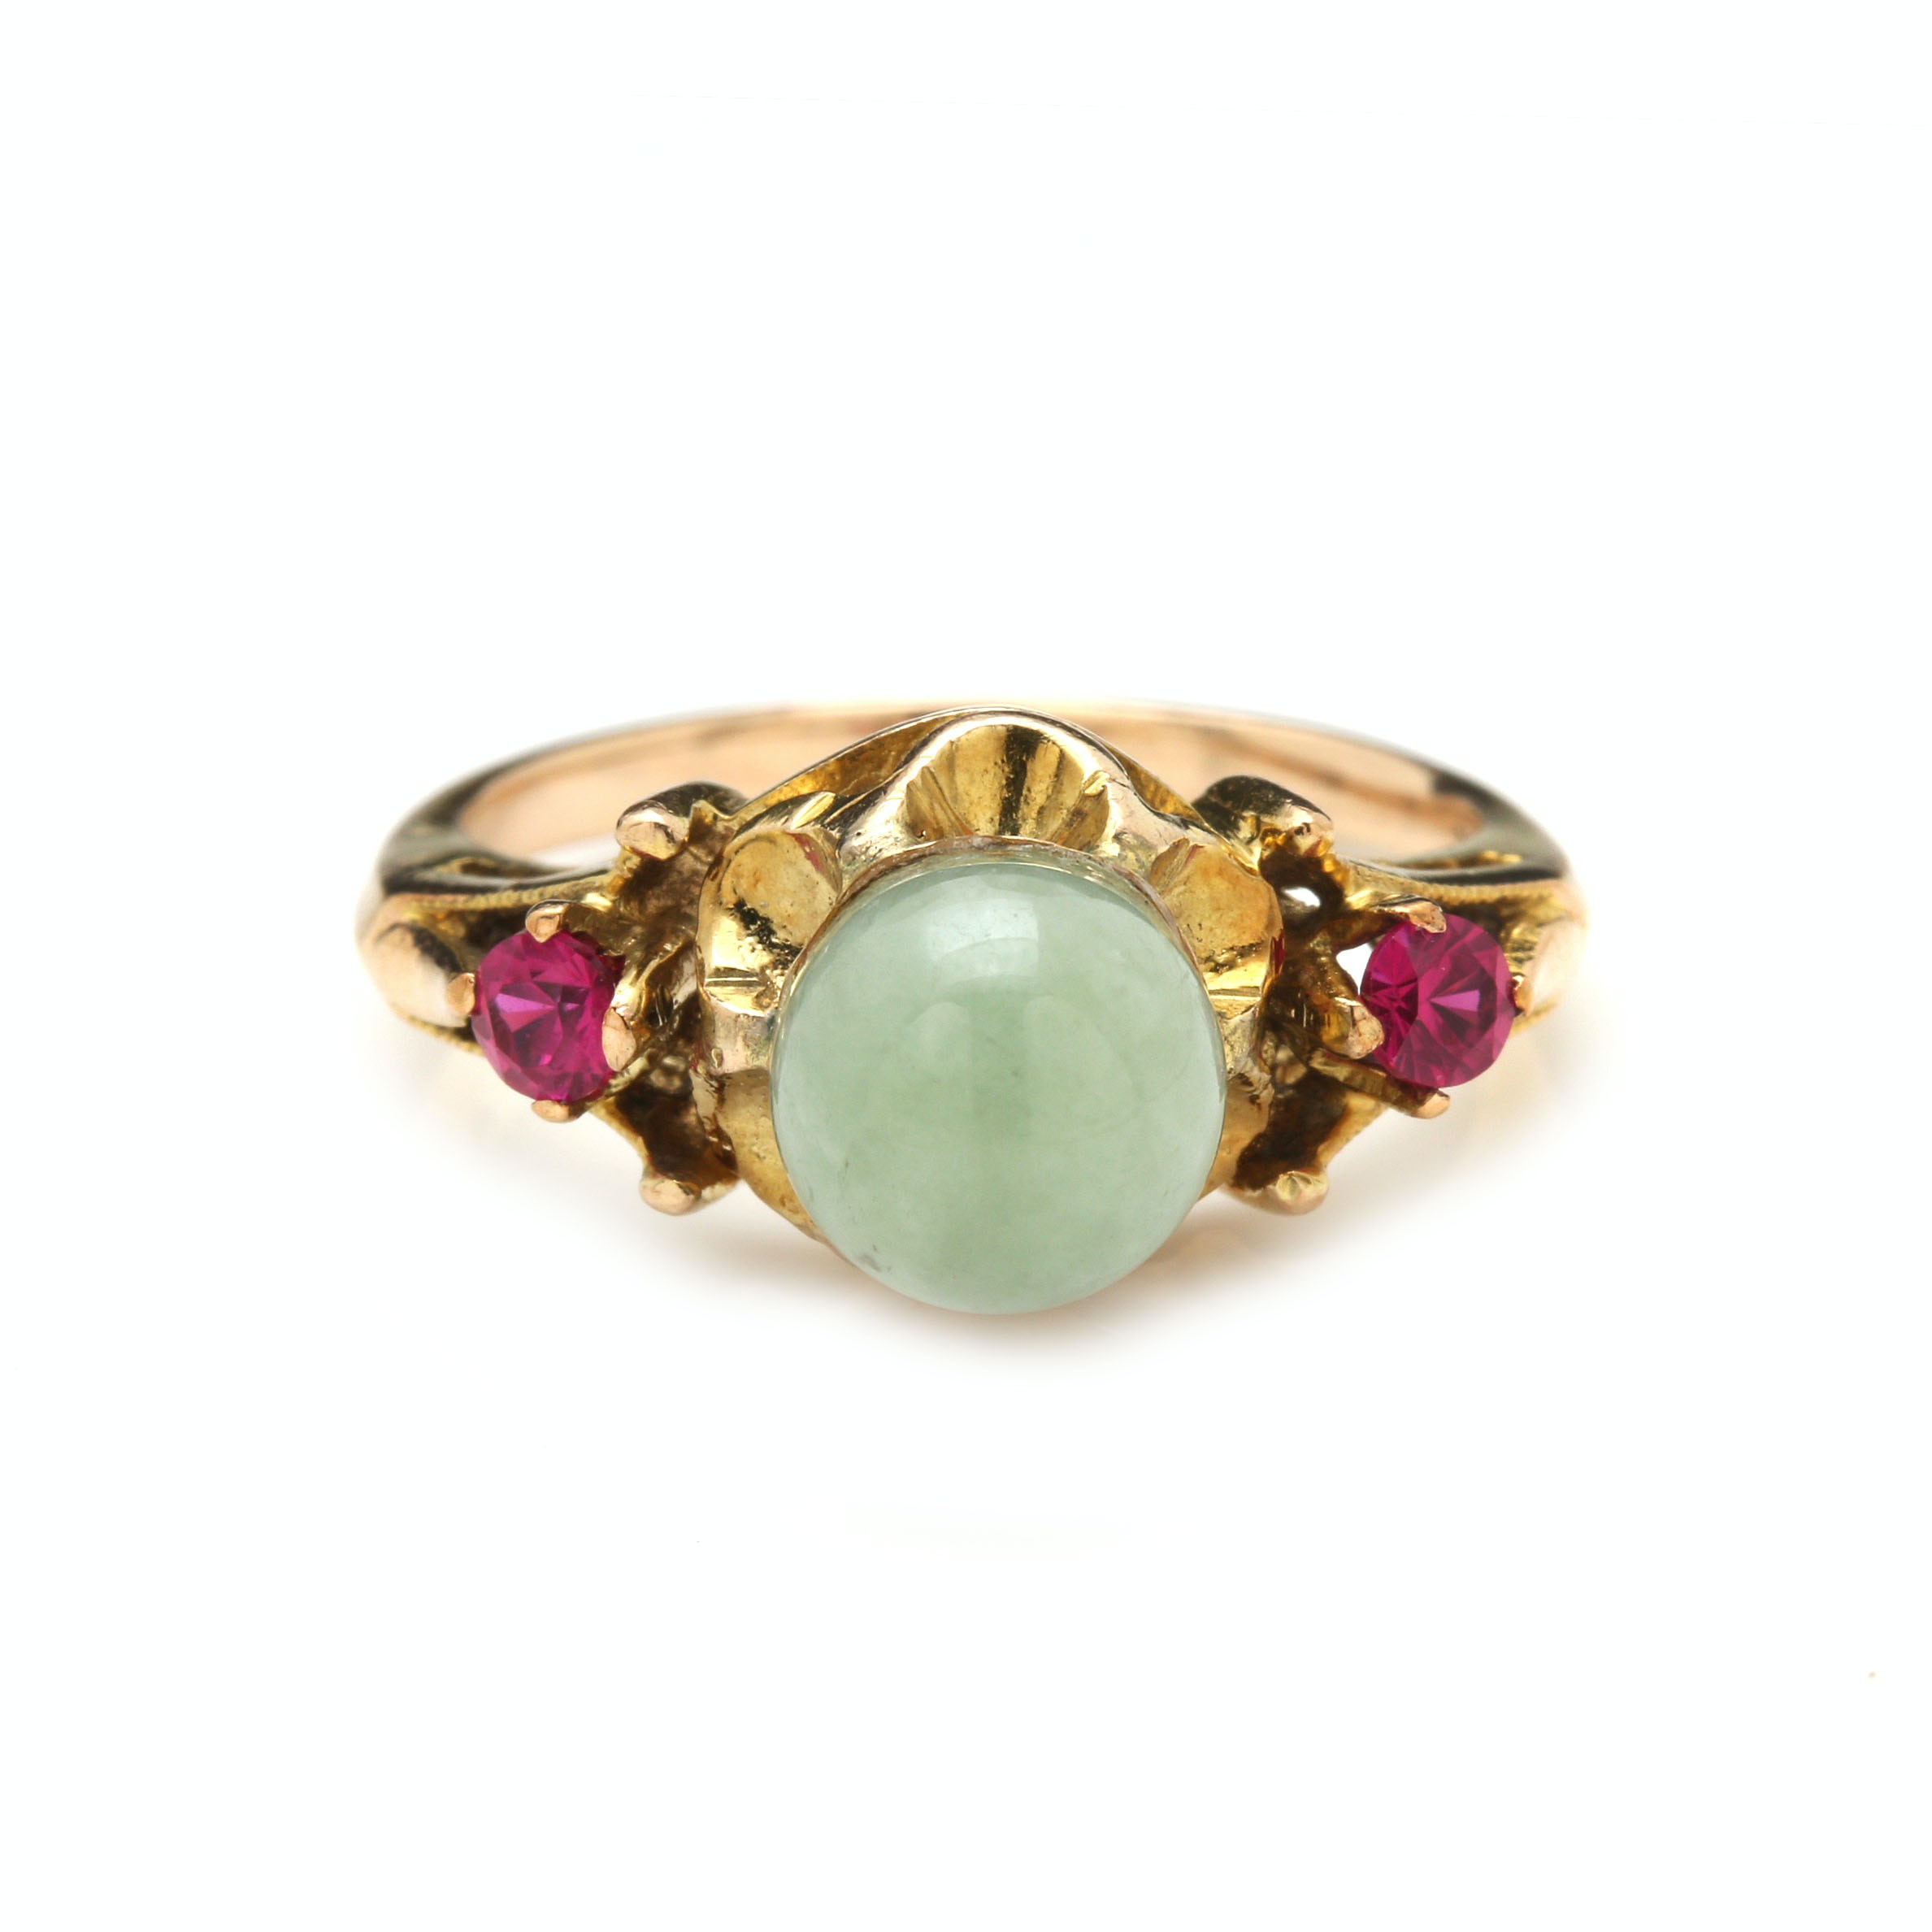 10K Yellow Gold Nephrite and Ruby Ring